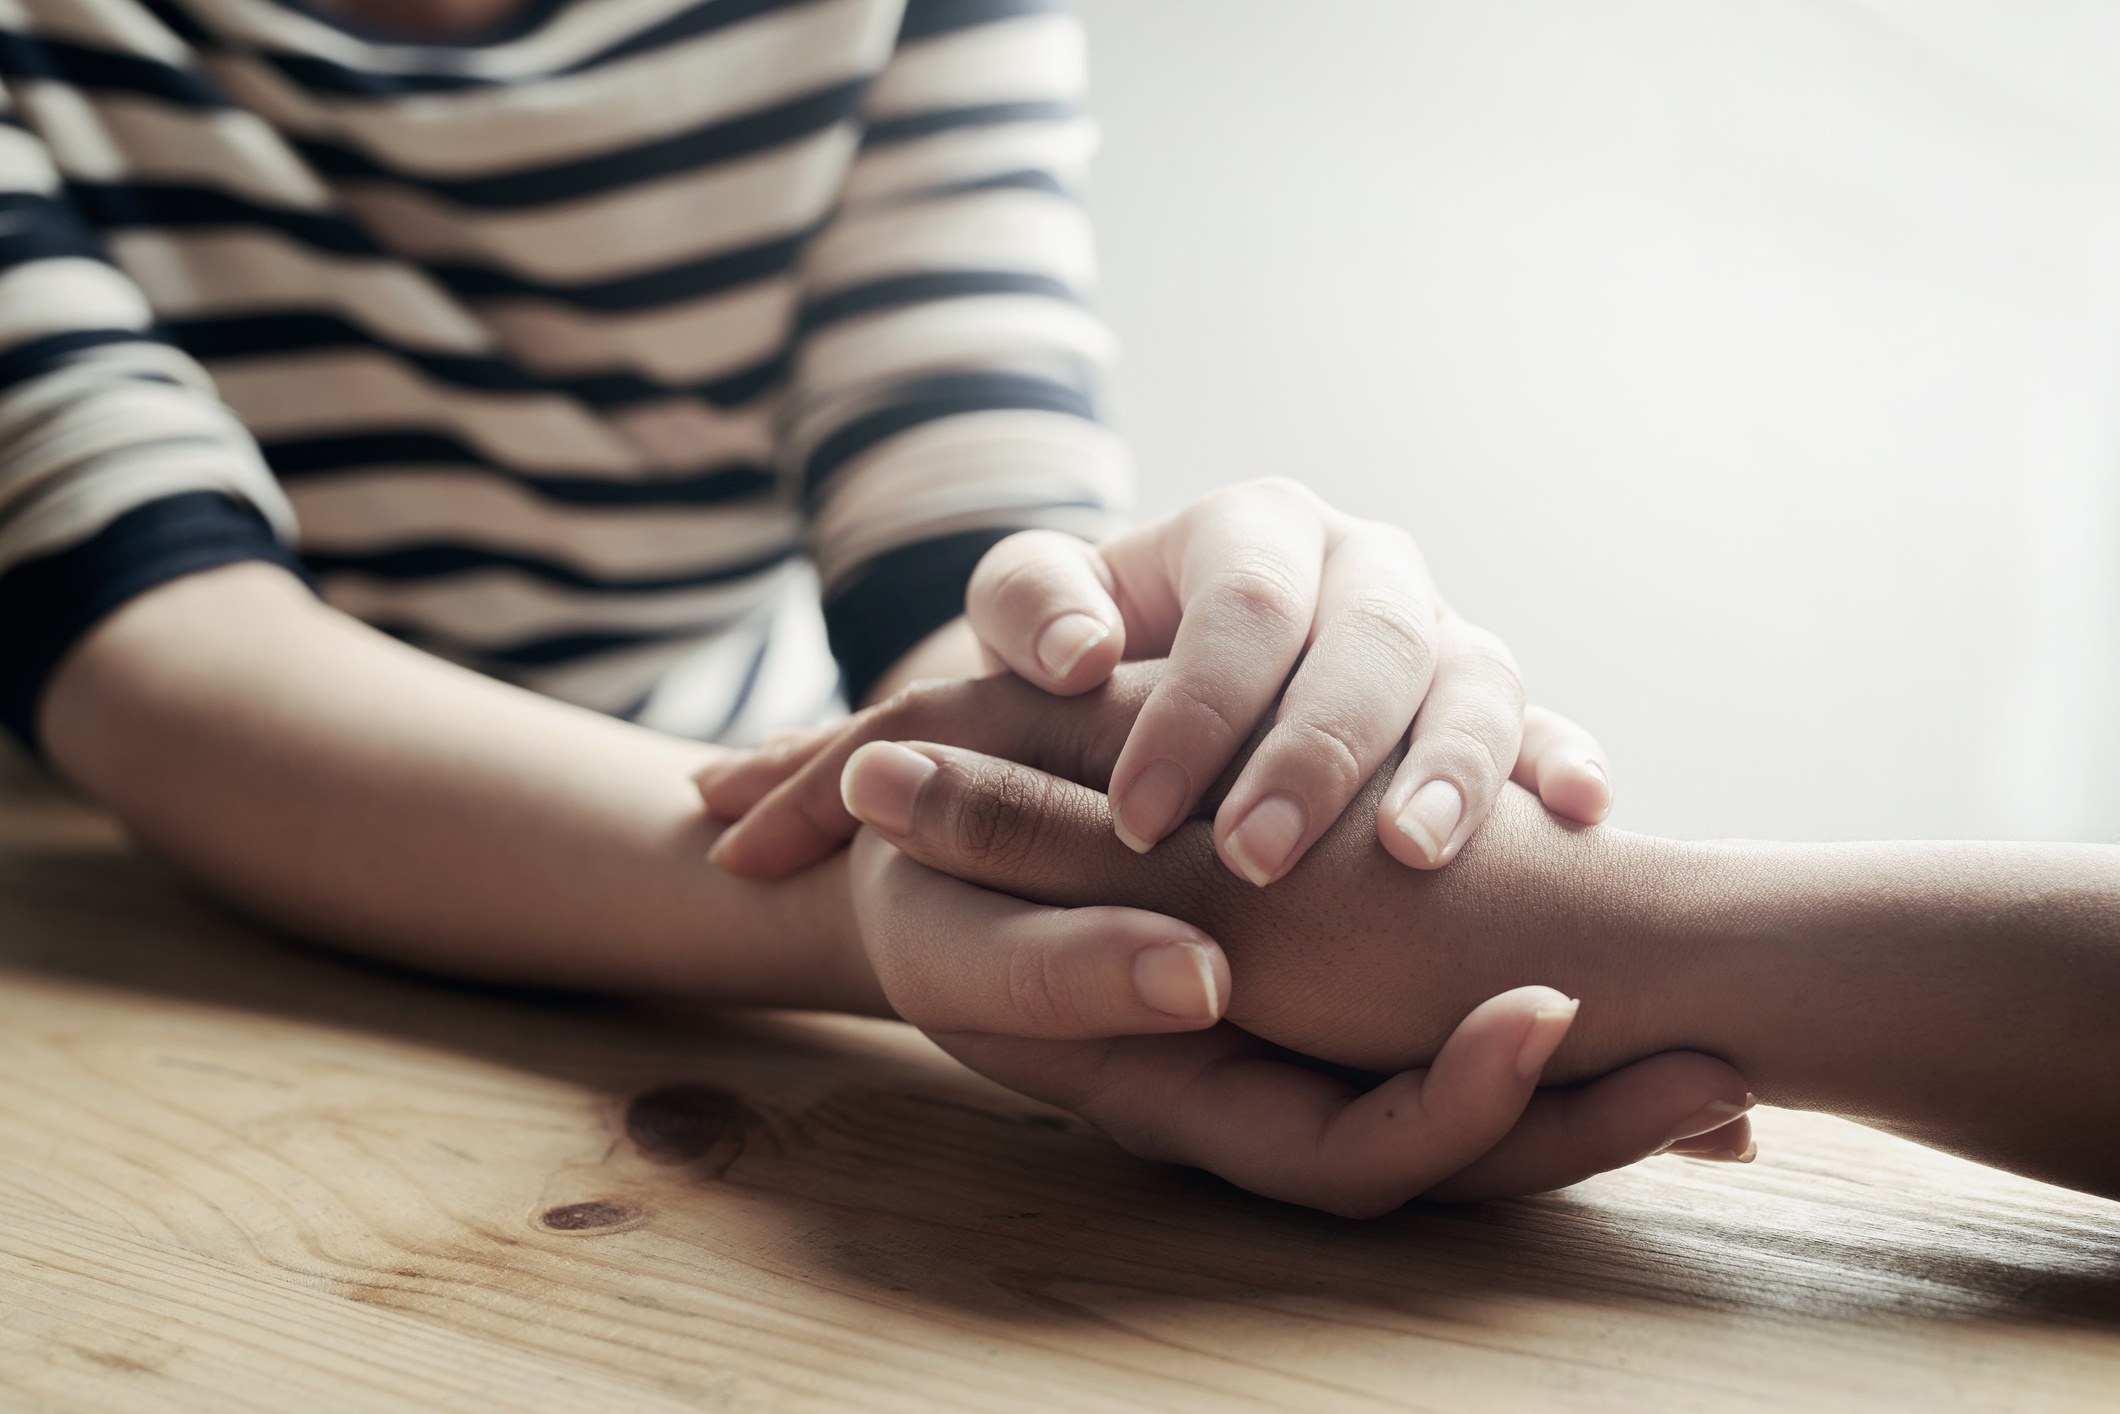 Empathy builds bridges of connection and meaningful relationships